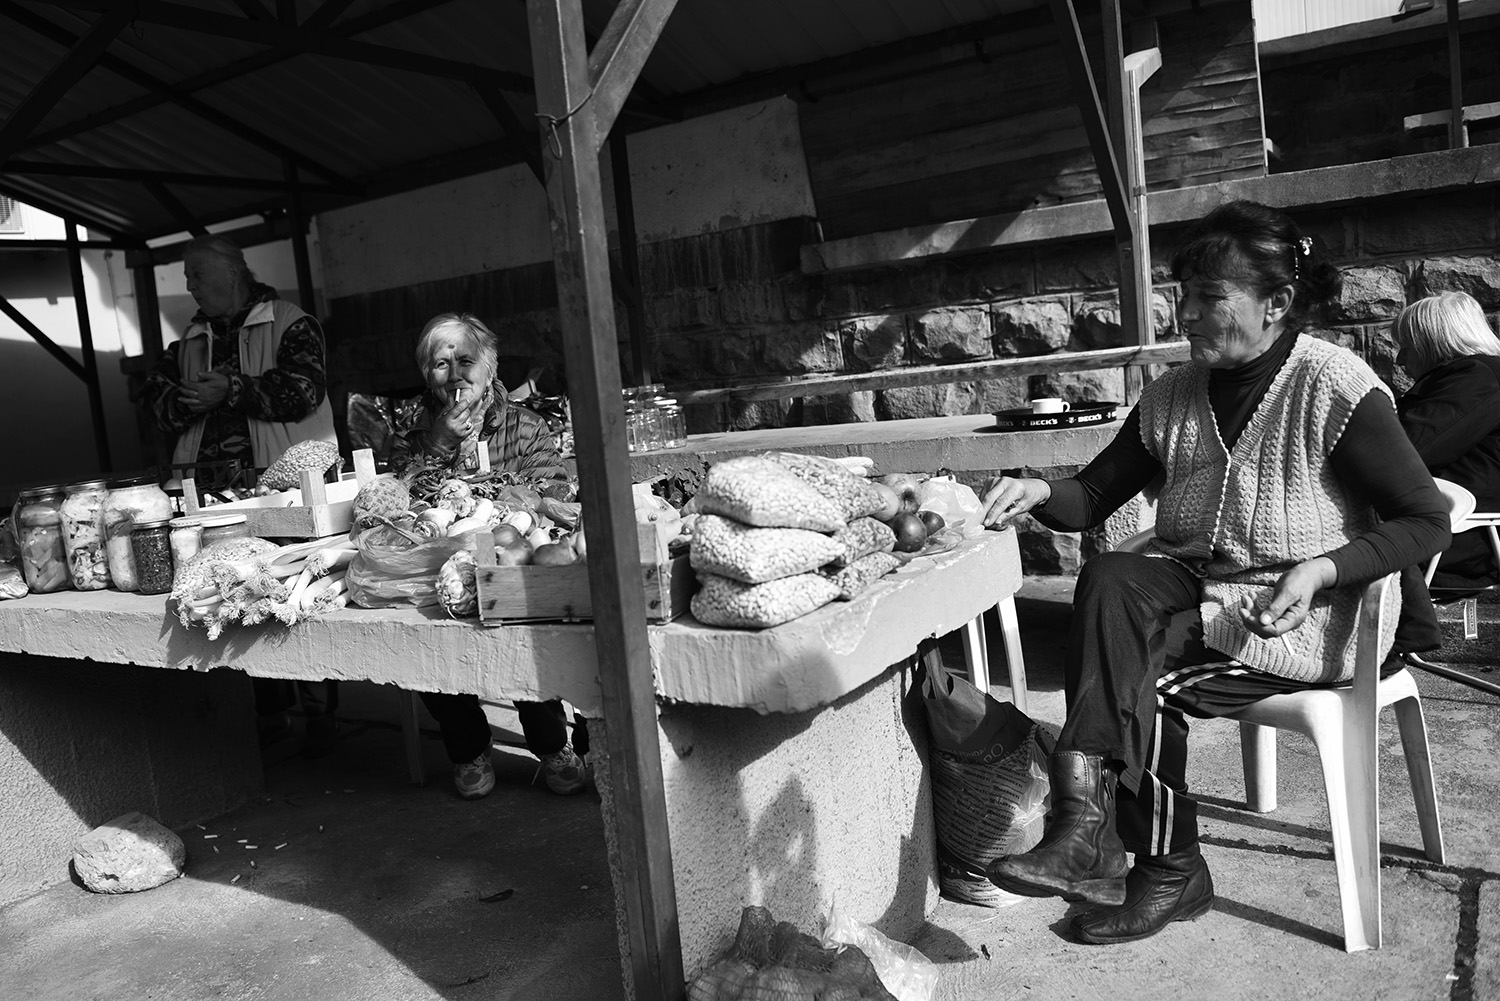 In the city center at the market stall is just one stand with fruits and vegetables. Bosniak Abida Karim (2nd L) from Bratunac every Monday, the last fourteen years comes to Srebrenica, only she has a stand at the market stall. For her, nothing has changed. It is difficult, she says, she lives from the sale in the market stall, she had to feed two families.